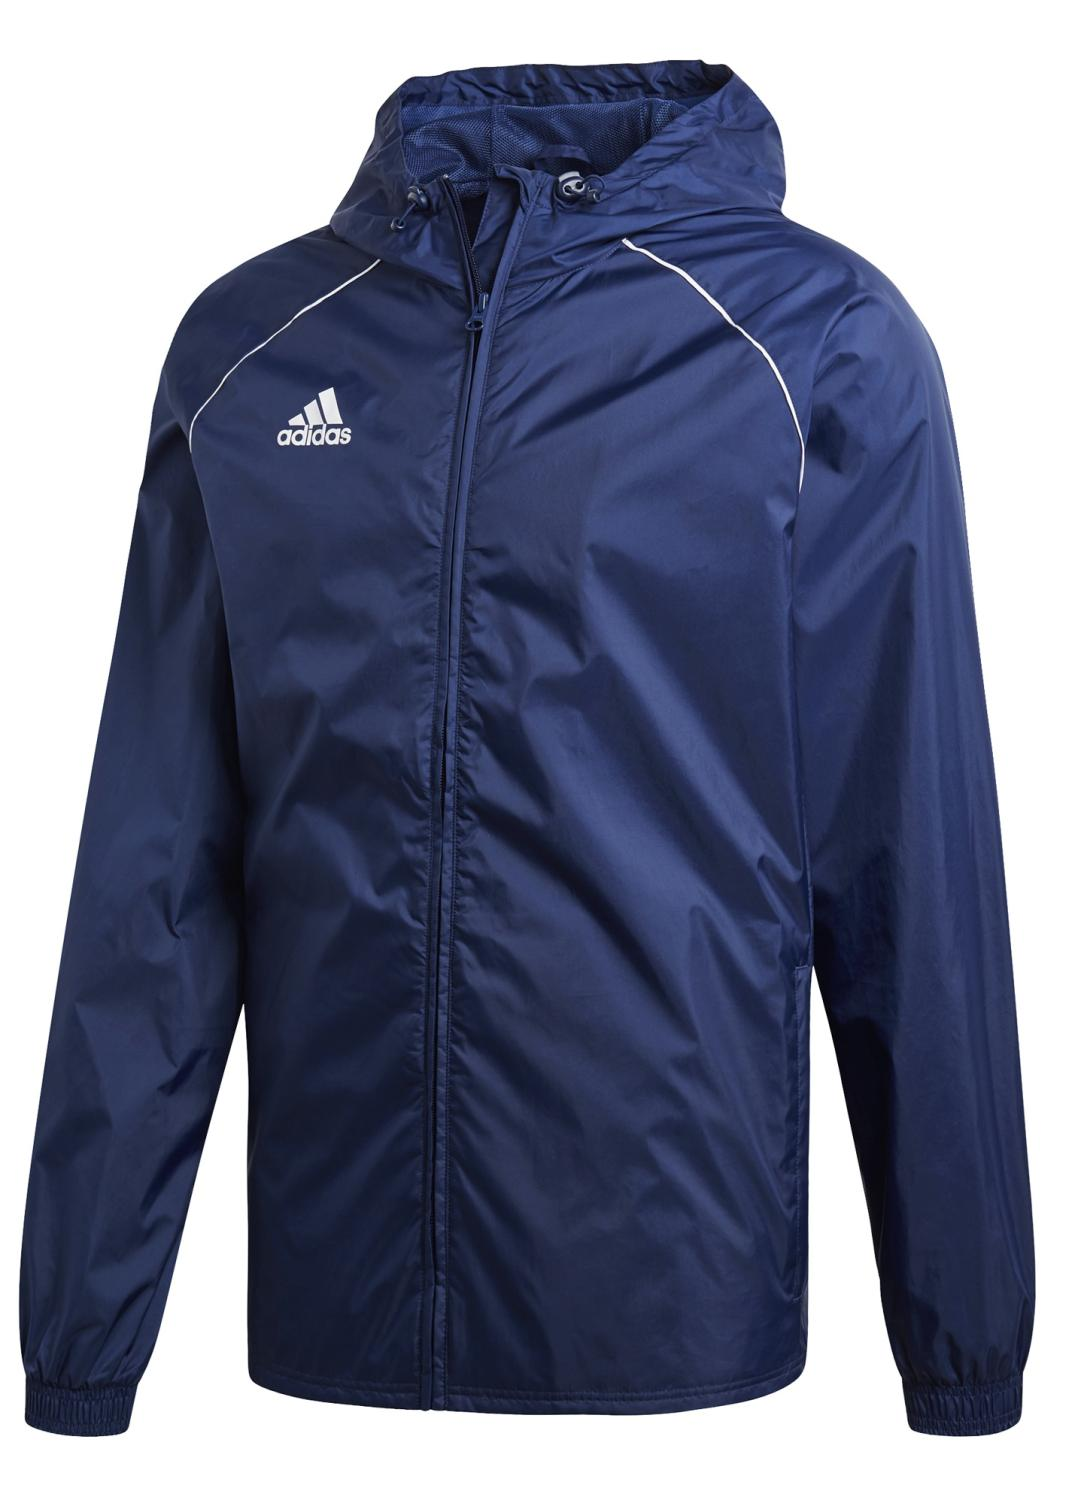 Bunda Adidas Core 18 Rain Jacket, Xl